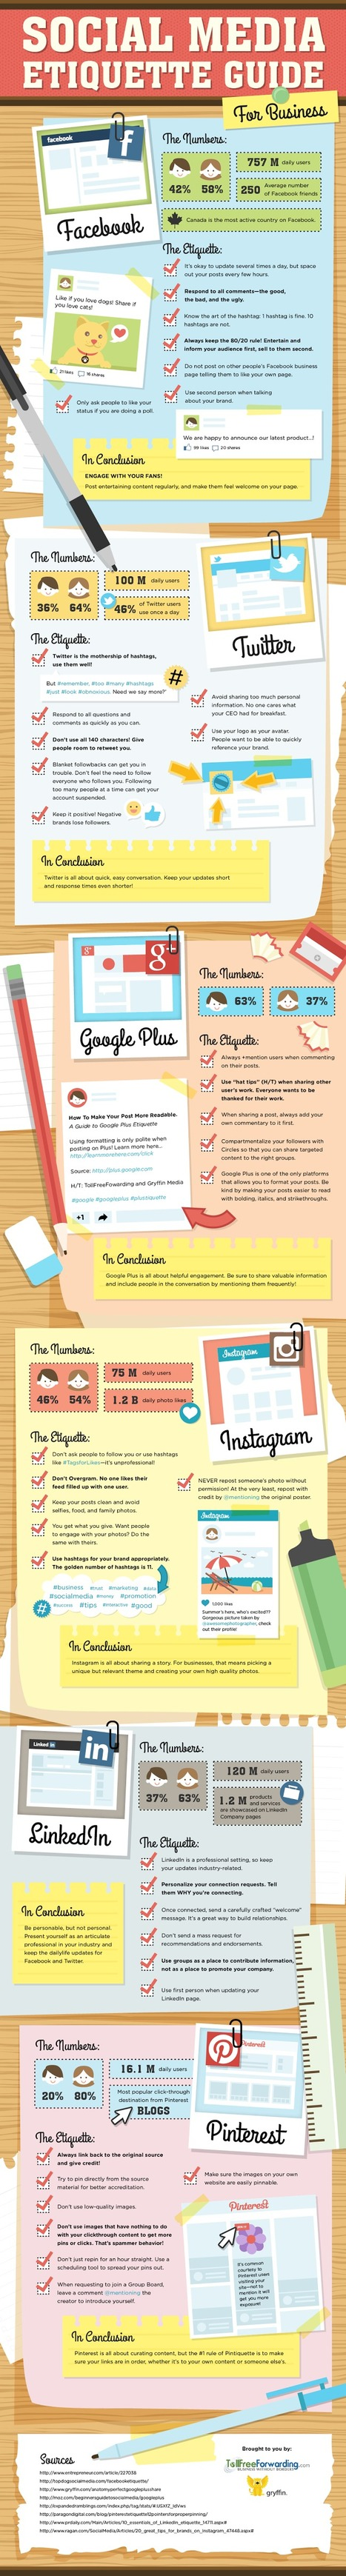 GooglePlus, Twitter, Instagram, Facebook, Pinterest - Social Media Etiquette Guide For Business - #infographic | Le Monde 2.0 | Scoop.it